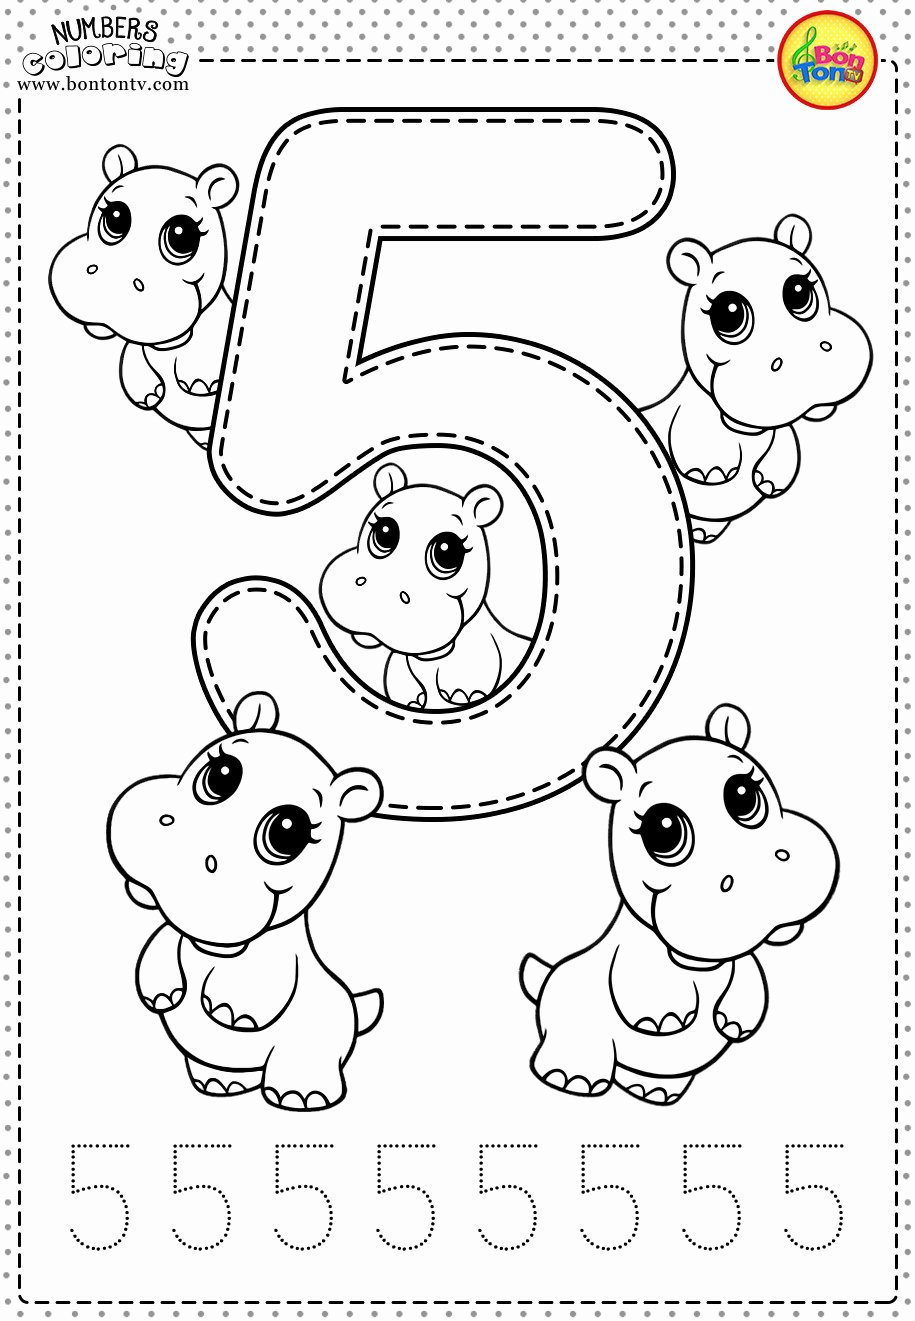 Number Coloring Worksheets for Preschoolers Best Of Number Coloring Worksheets Schools Preschool Printable